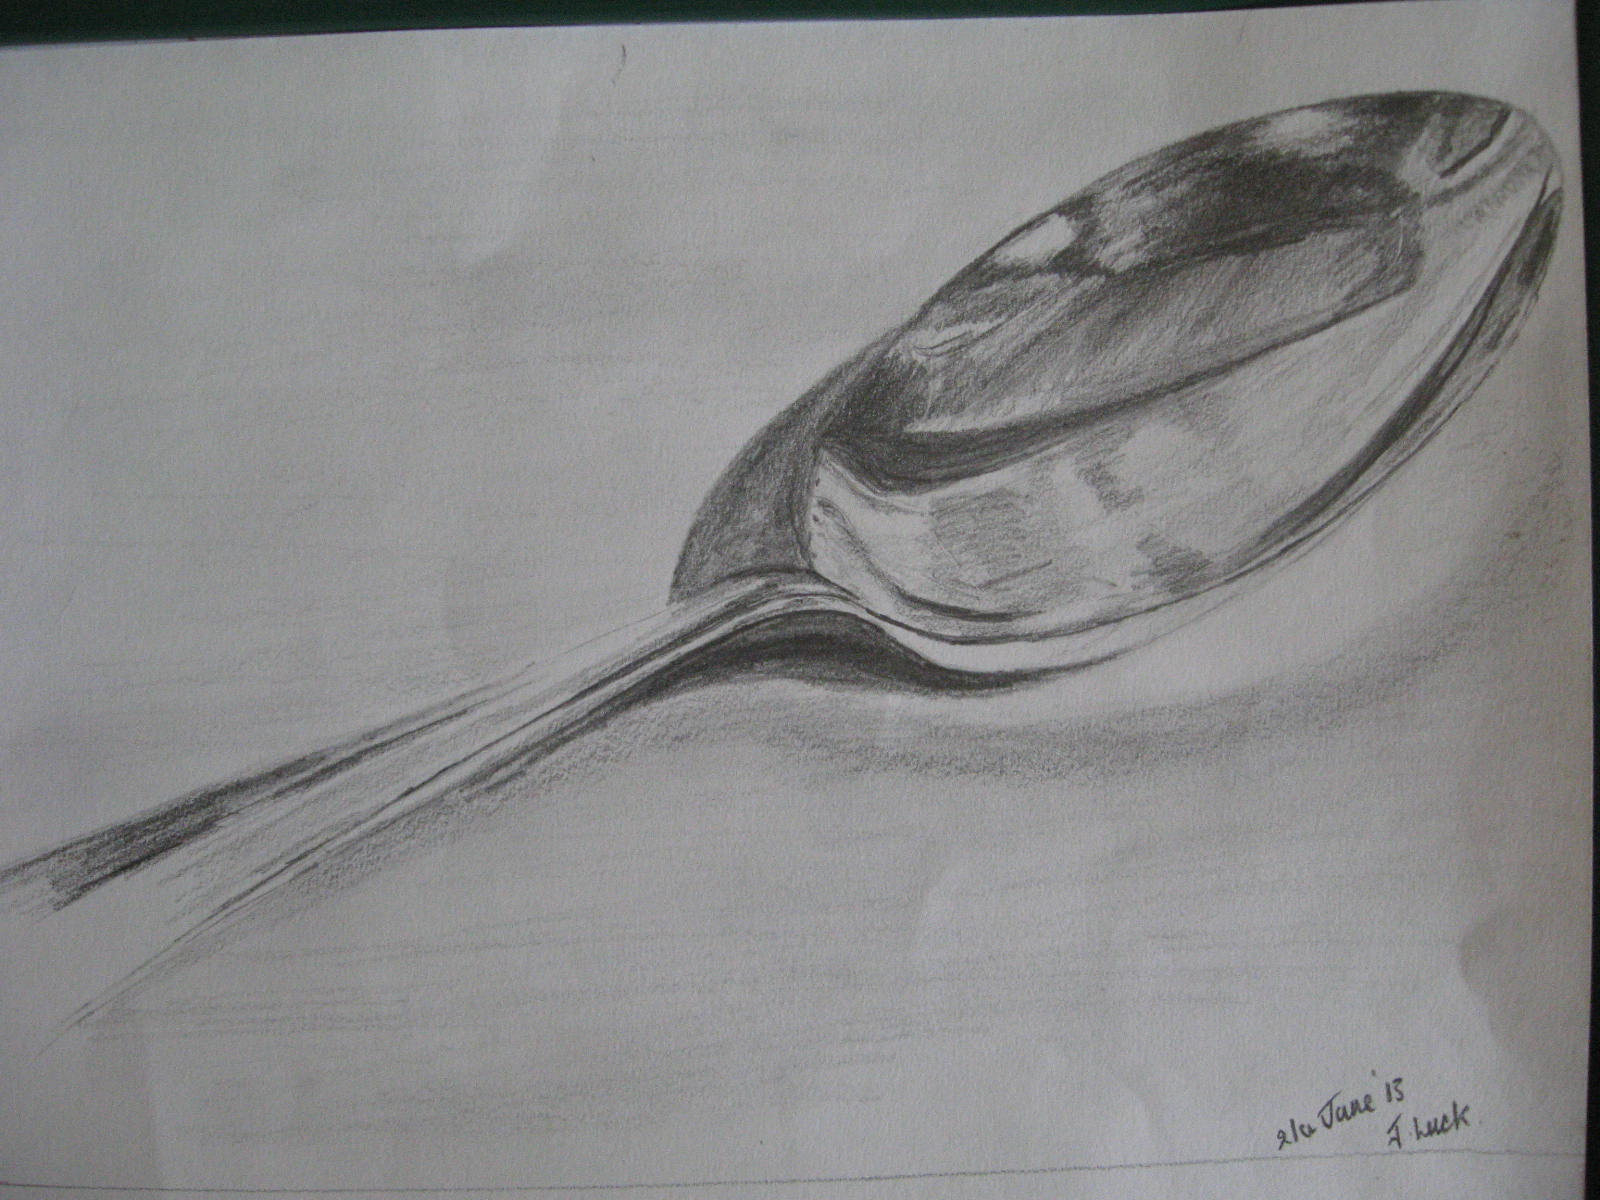 Drawn spoon pencil drawing Spoon Pencil Pencil Drawing Drawing